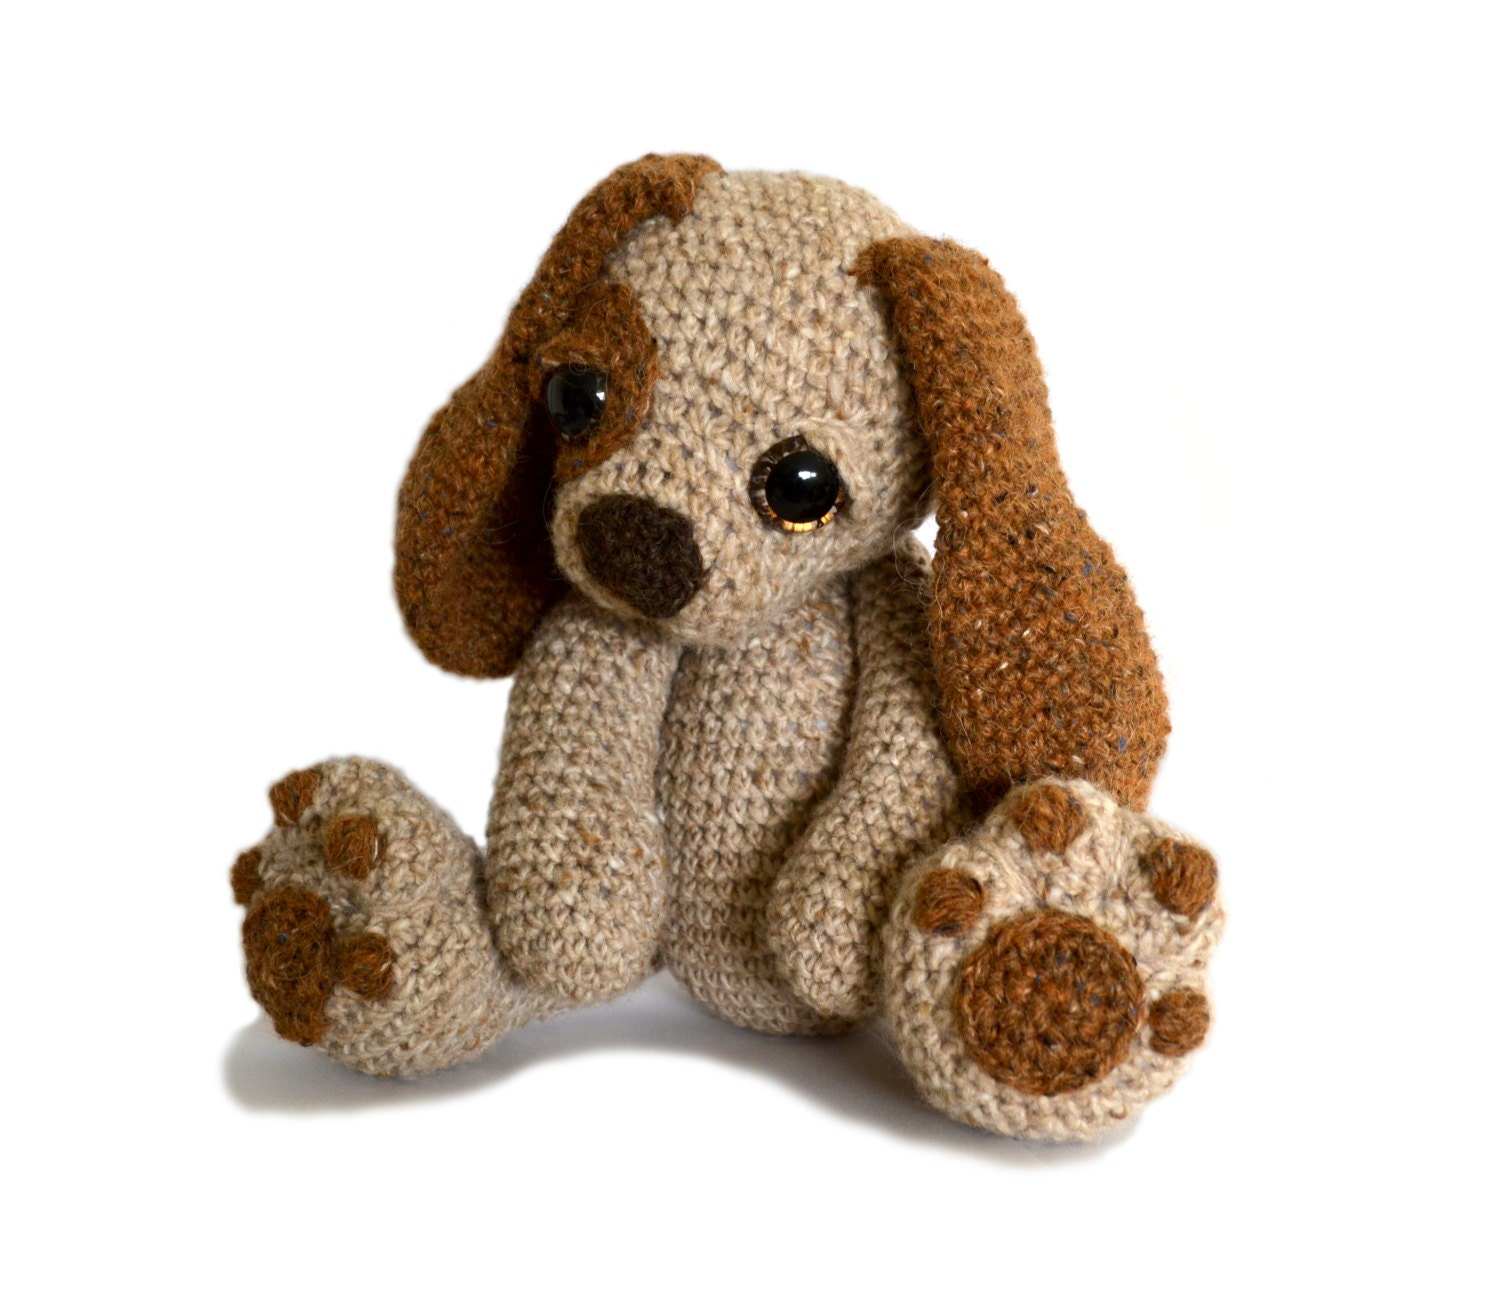 Dolphin Amigurumi Free Crochet Pattern : Puppy Dog Amigurumi Crochet Pattern PDF Instant Download